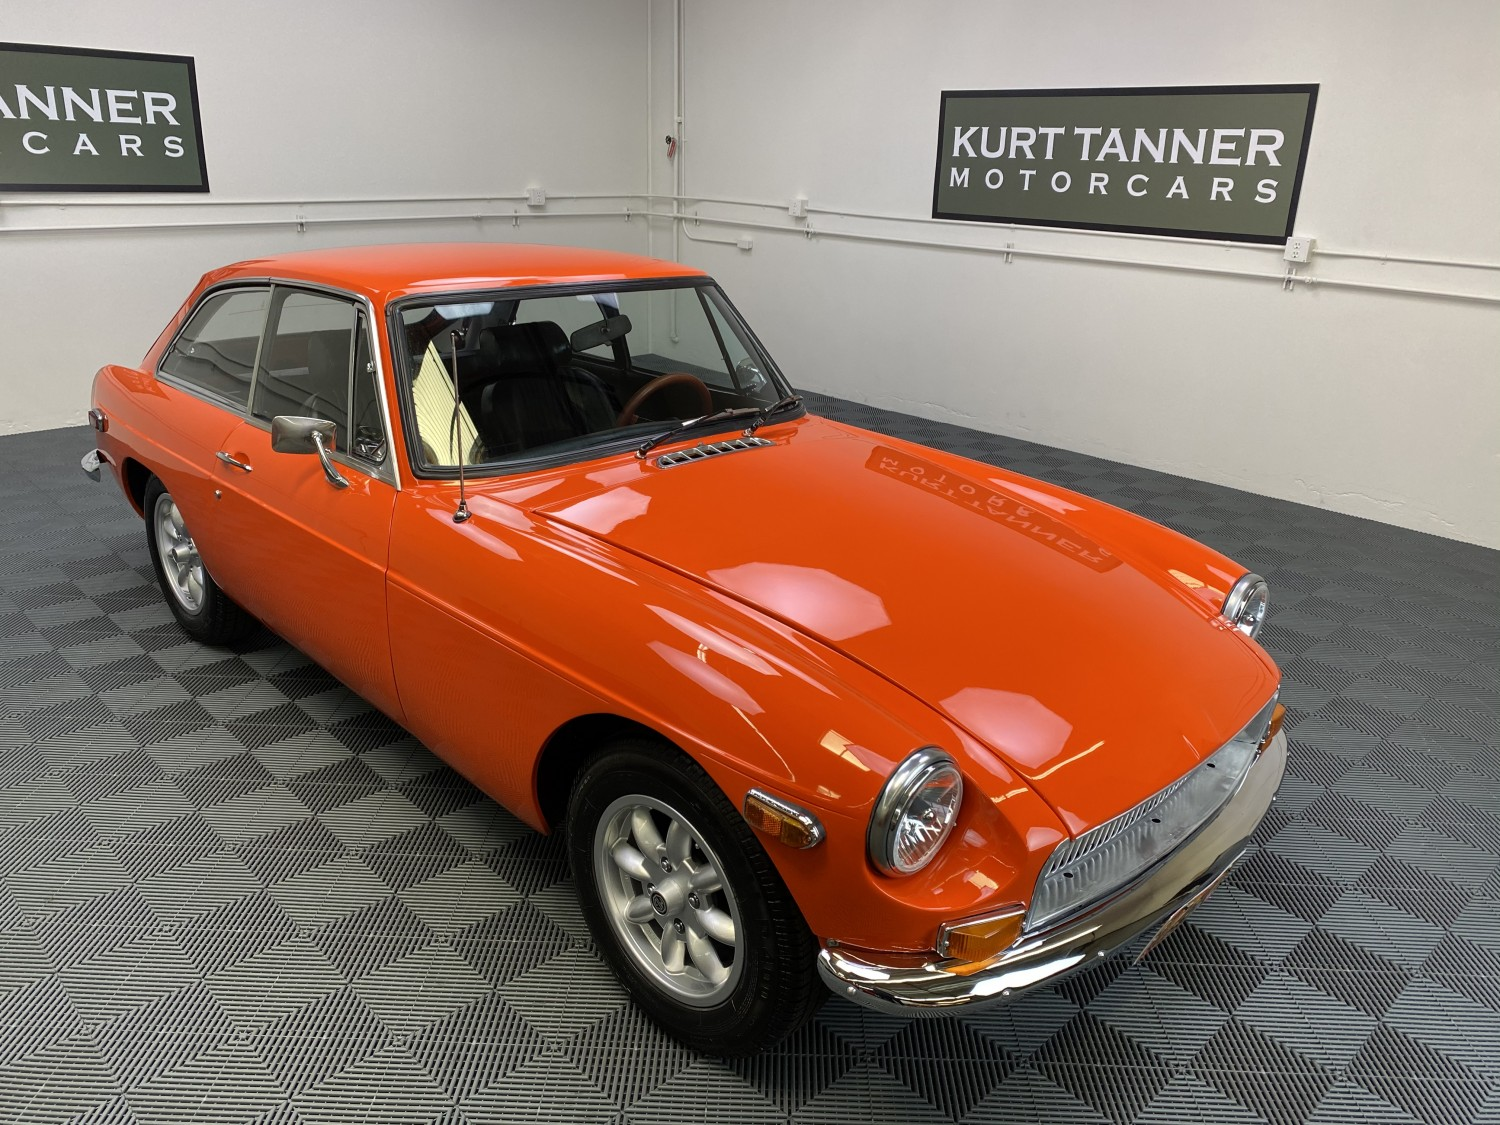 1970 MGB GT SPORTS COUPE. BLAZE ORANGE WITH BLACK TRIM. 4-SPEED WITH OVERDRIVE. MINILTE ALLOY WHEELS. SUPER COSMETIC RESTORATION.  EXCELLENT DRIVING CAR.